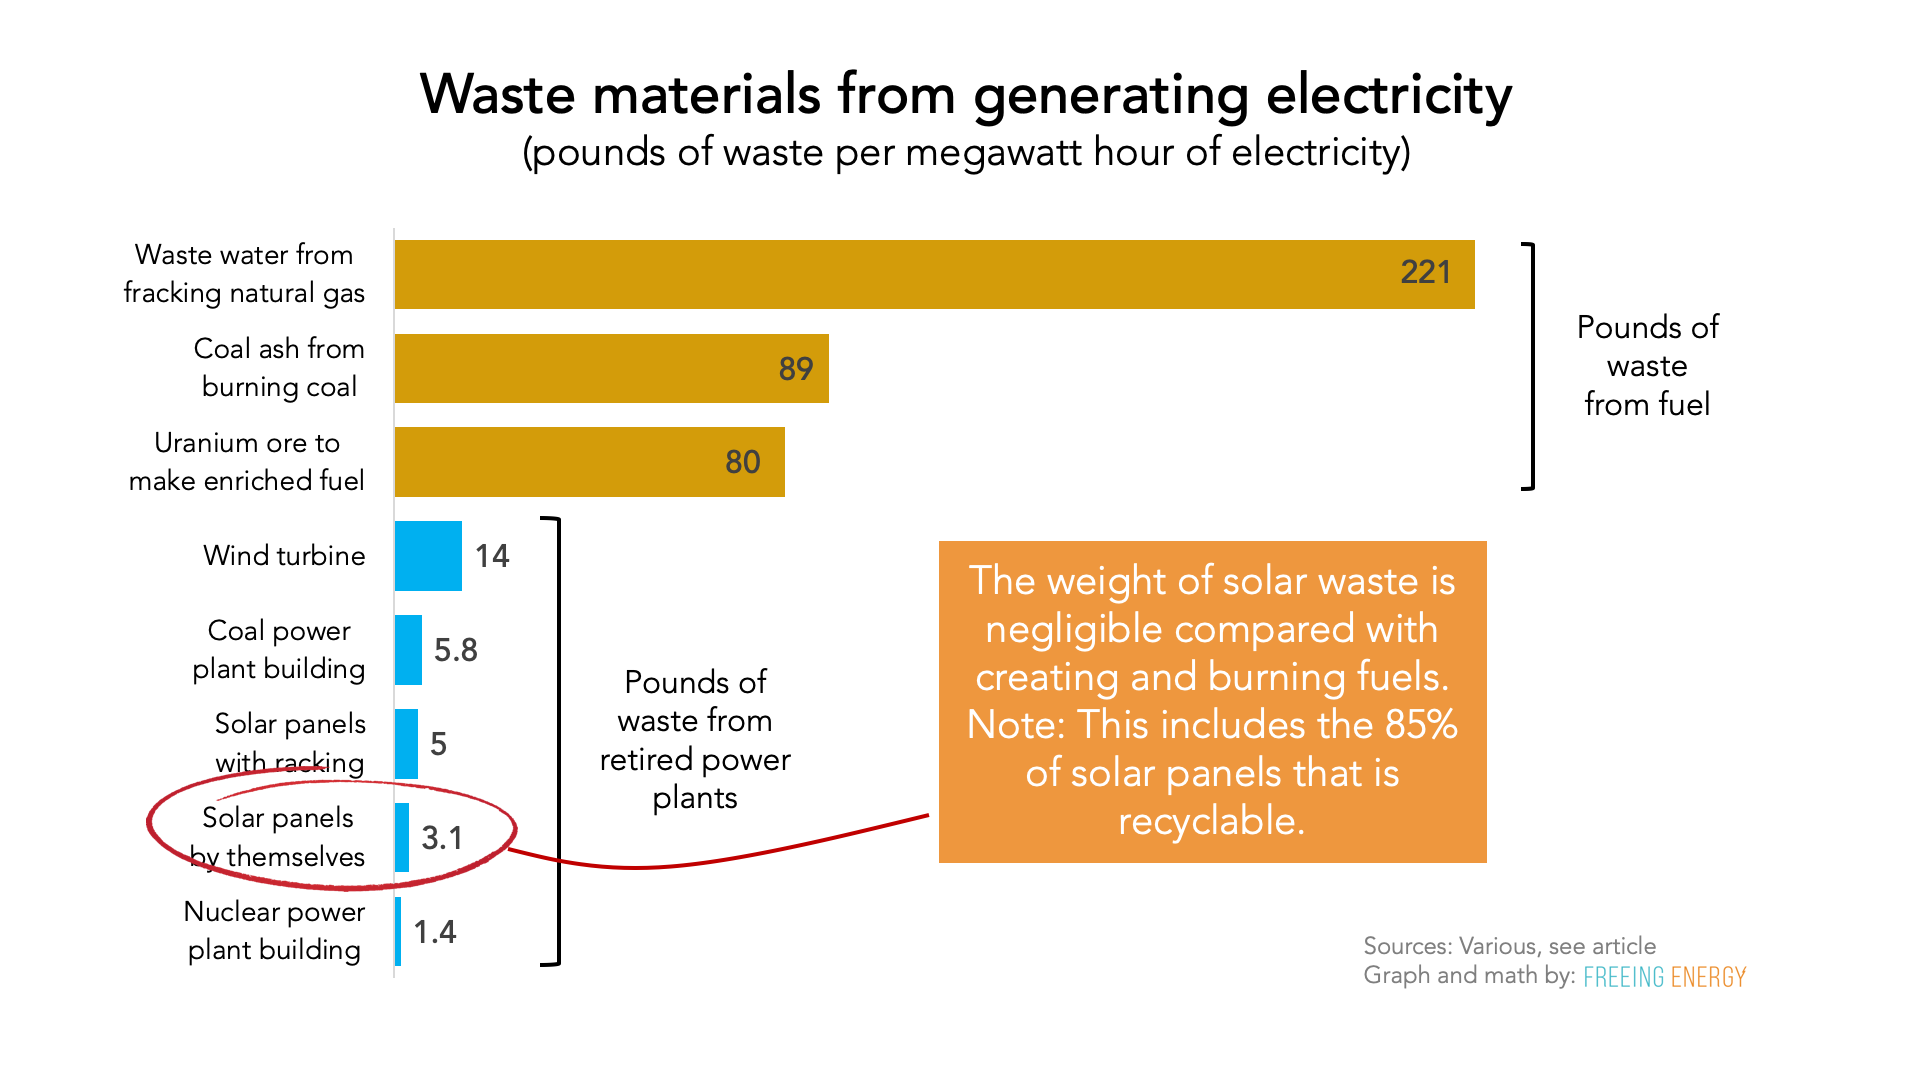 graph comparing the waste from various kinds of electricity generation